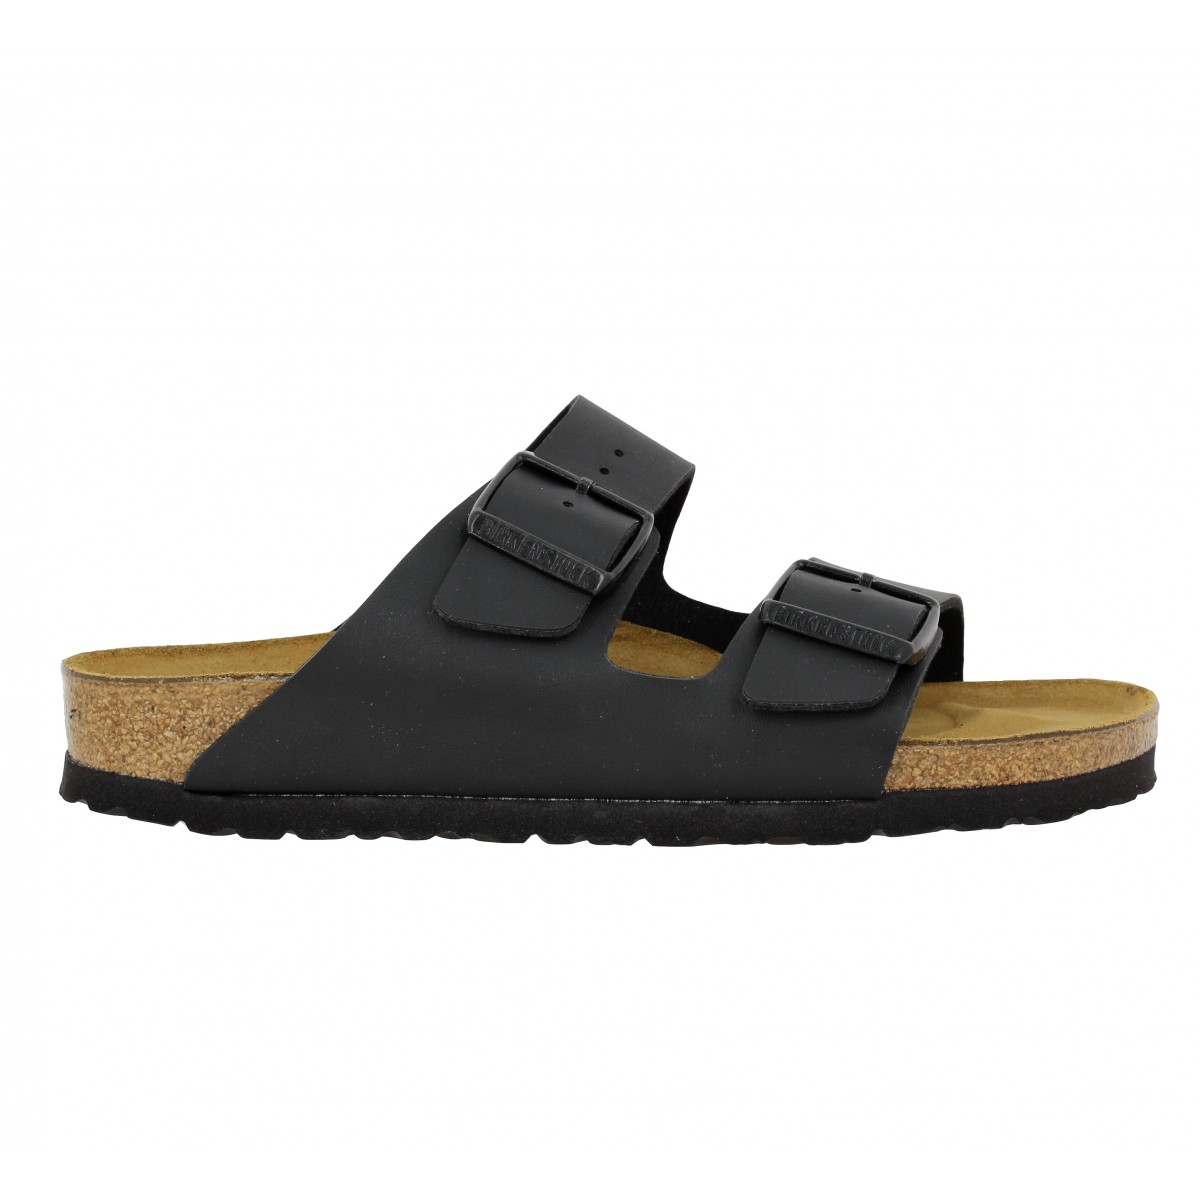 soldes birkenstock arizona birko flor homme noir fanny chaussures. Black Bedroom Furniture Sets. Home Design Ideas